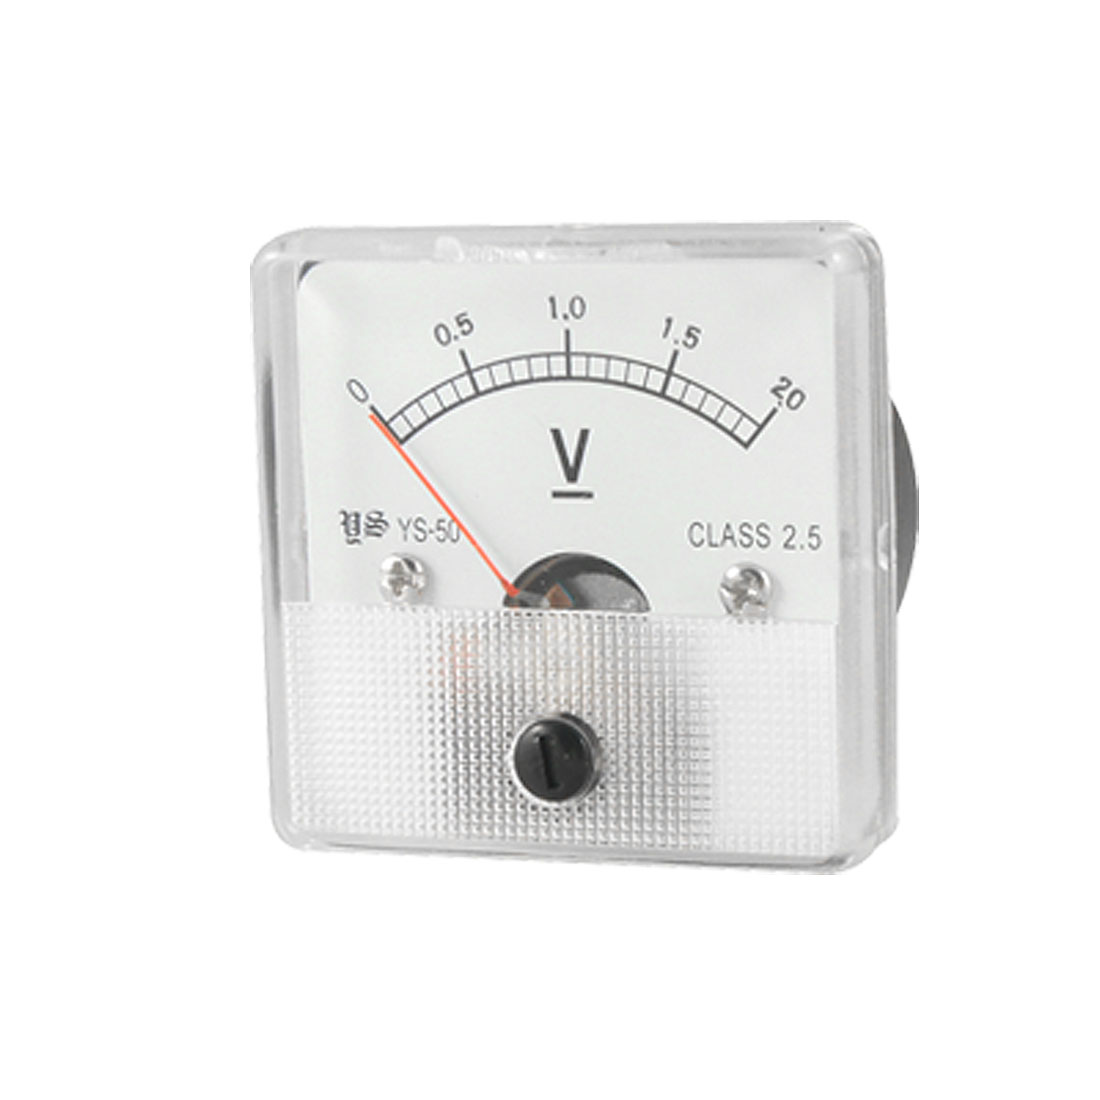 Class 2.5 Analog Voltage Panel Meter Voltmeter DC 0-2V